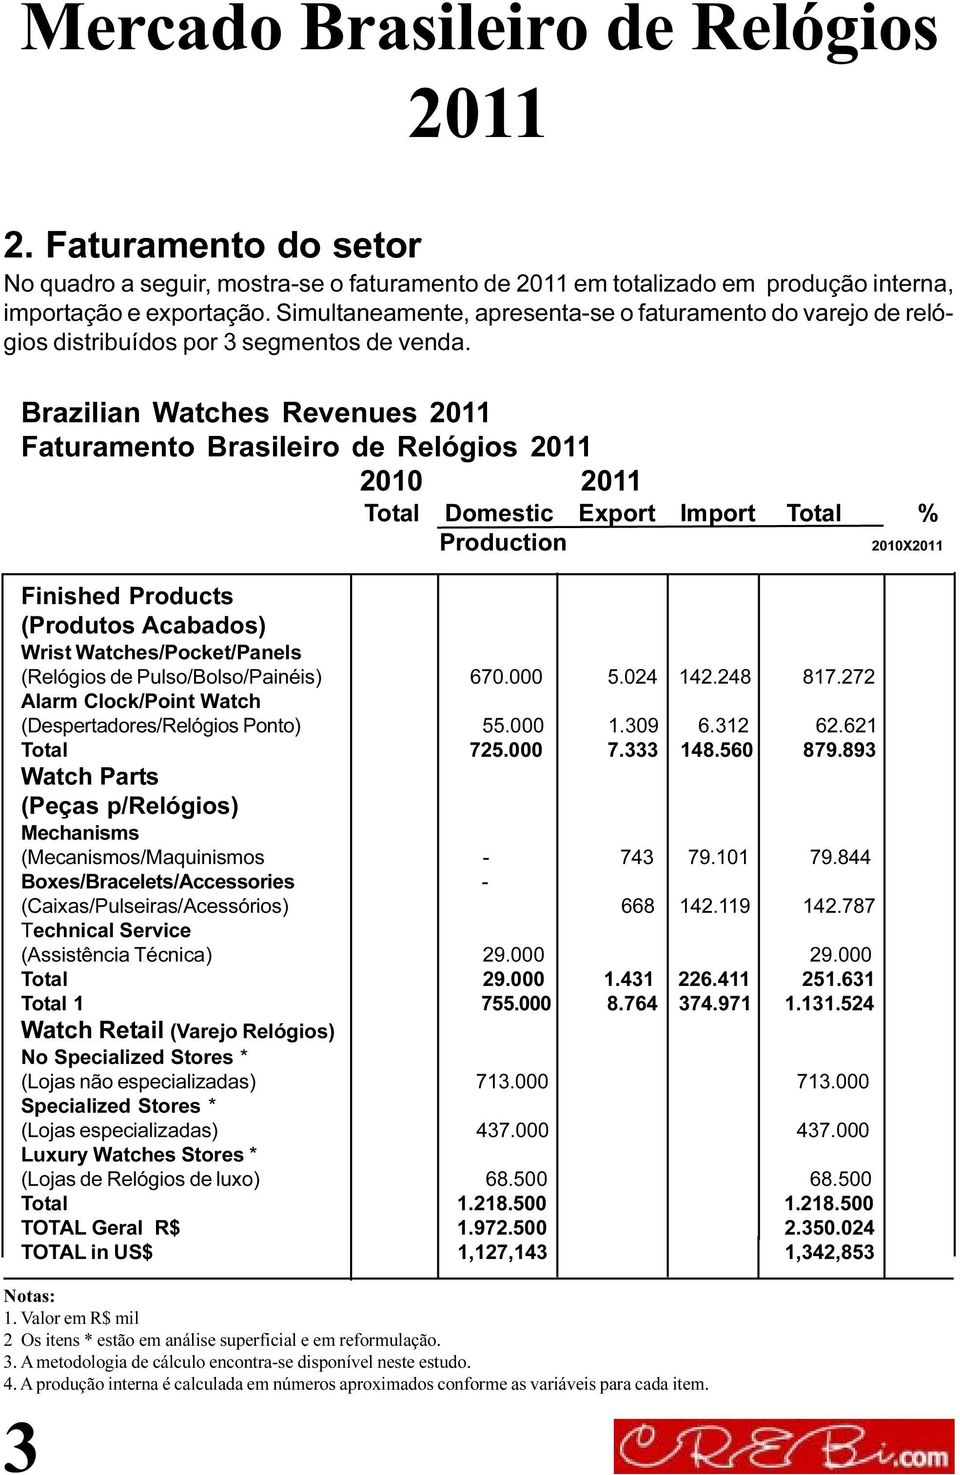 Brazilian Watches Revenues Faturamento Brasileiro de Relógios 2010 Total Domestic Export Import Total % Production 2010X Finished Products (Produtos Acabados) Wrist Watches/Pocket/Panels (Relógios de